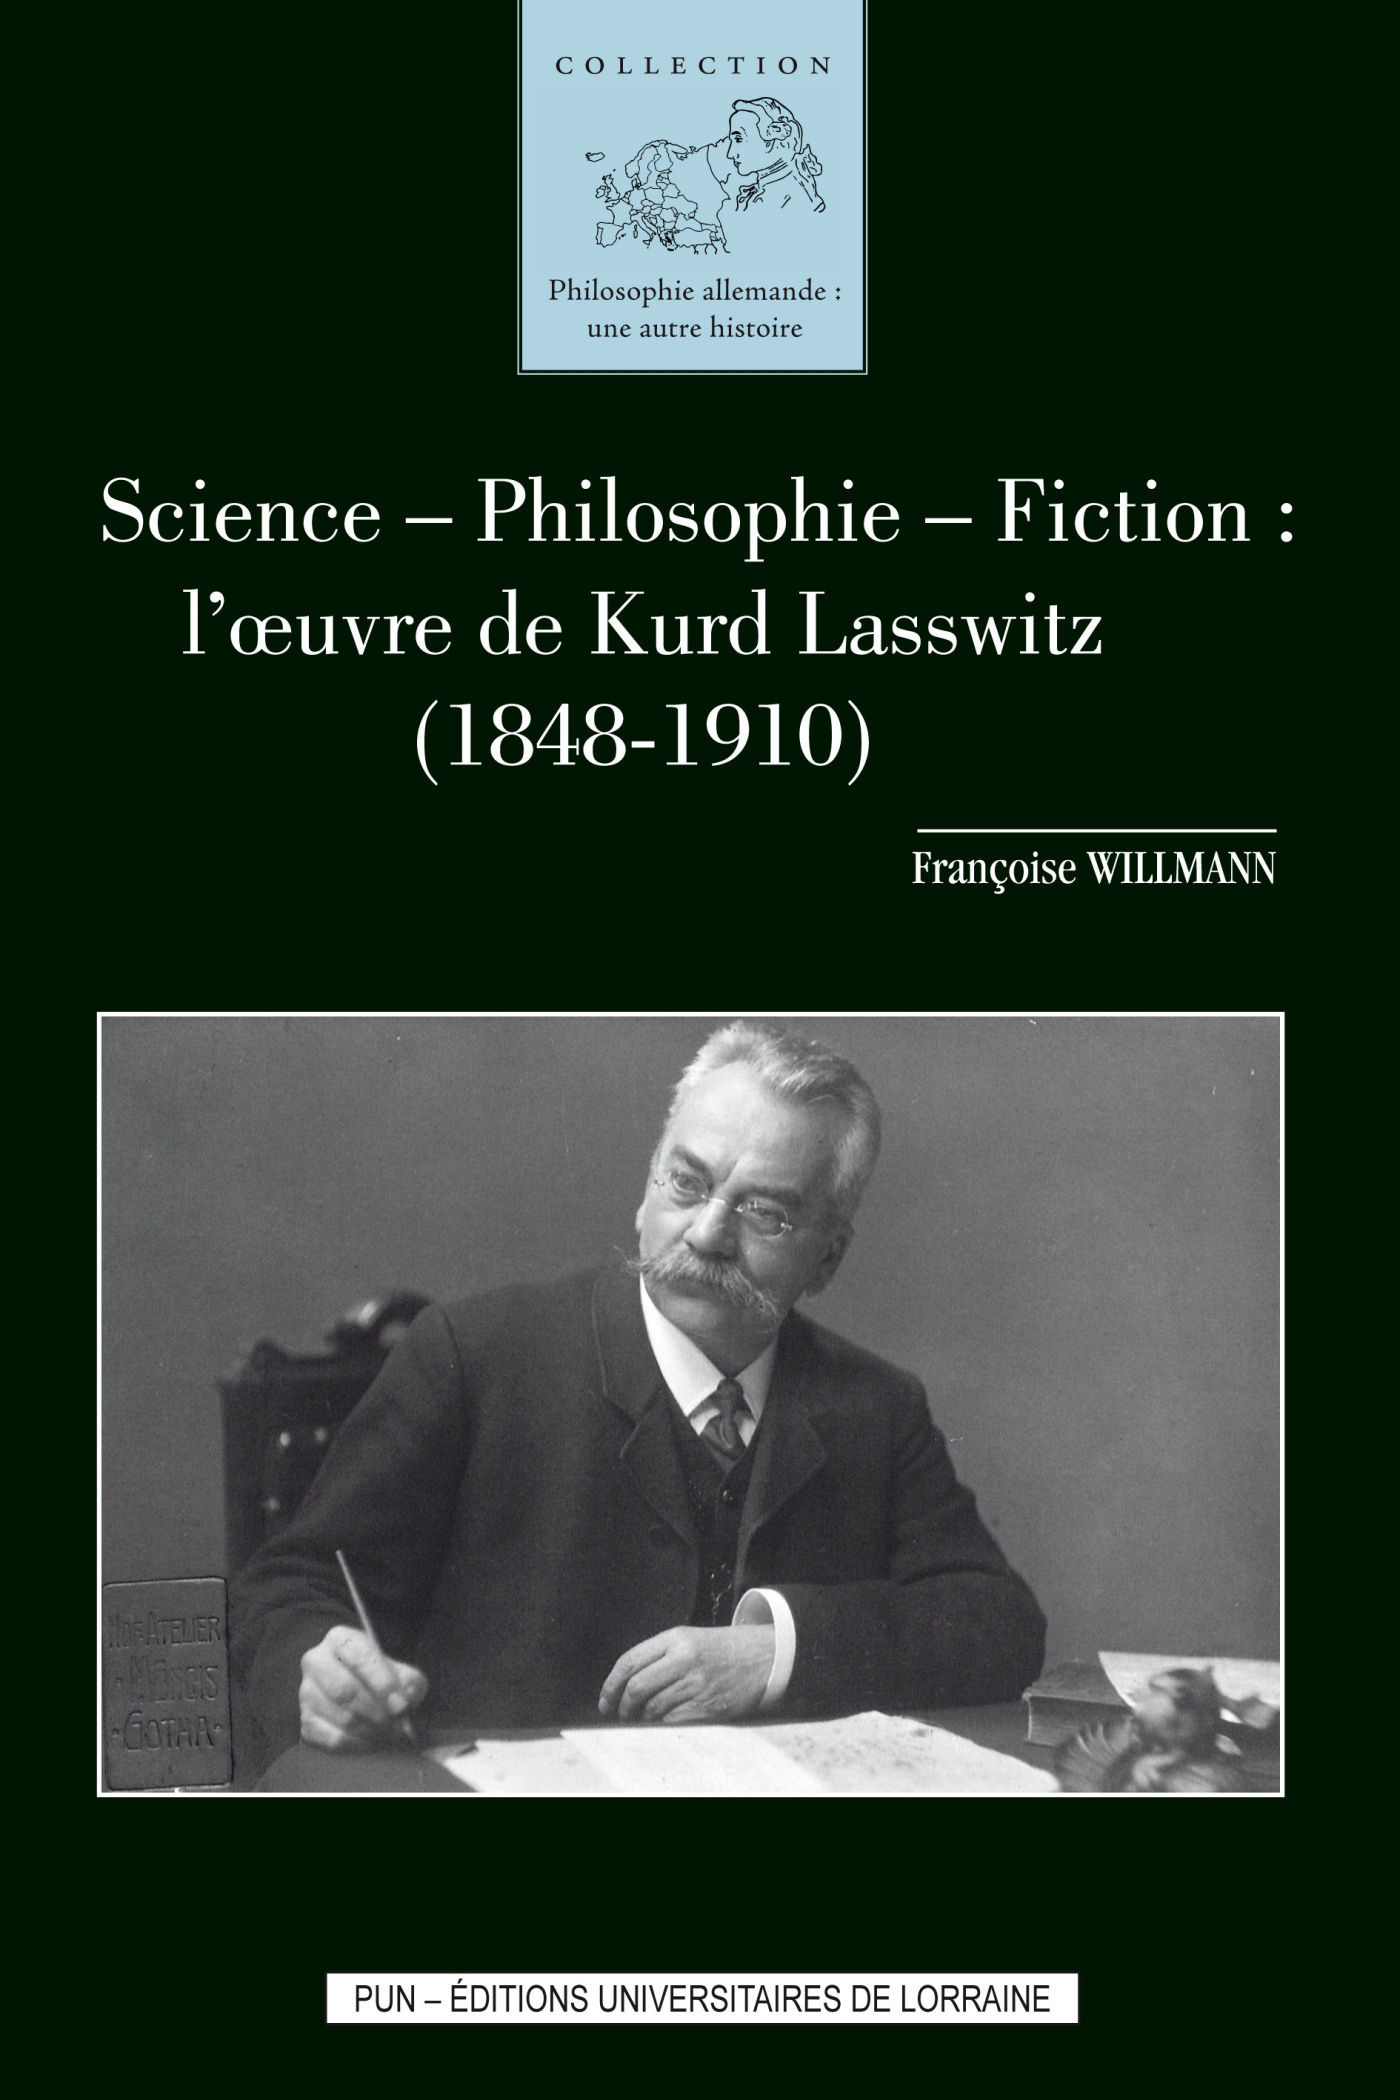 SCIENCE - PHILOSOPHIE - FICTION : L'OEUVRE DE KURD LASSWITZ (1848-191 0)